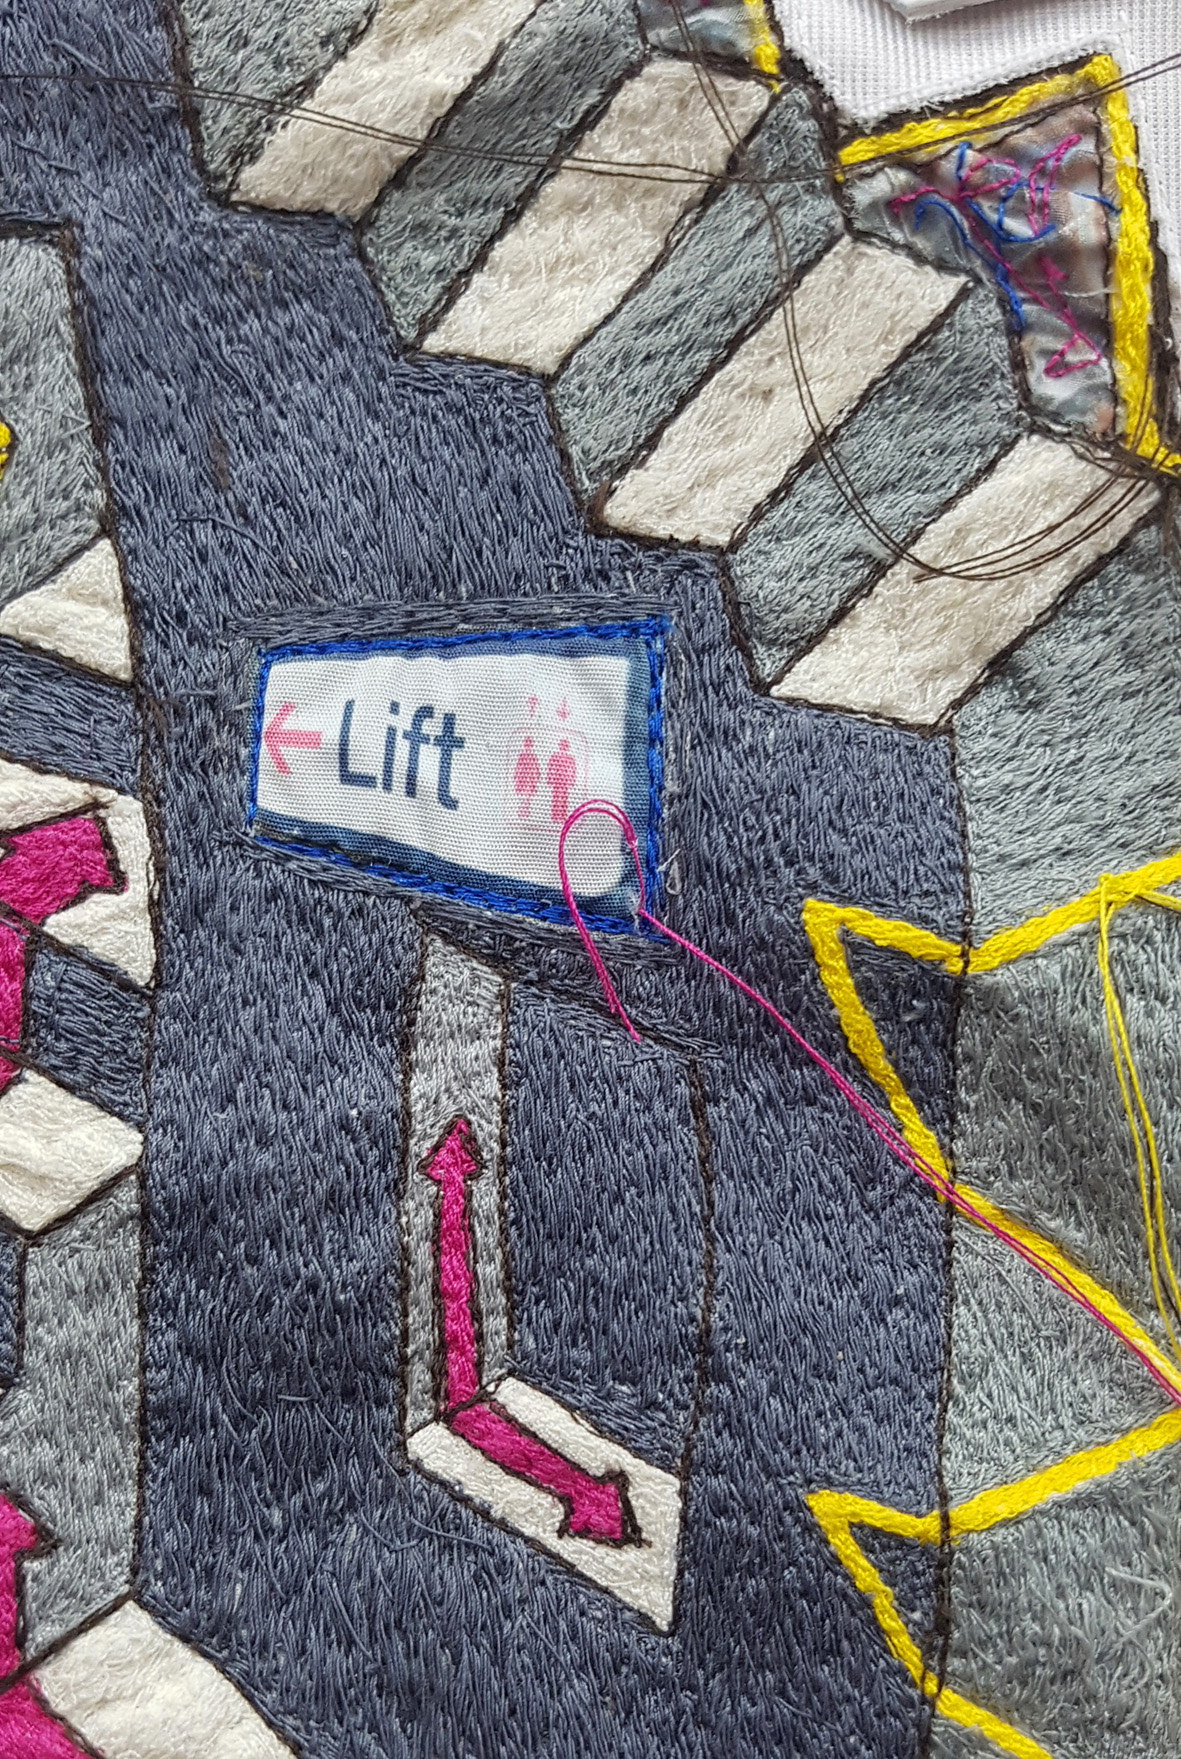 Textile embroidery with abstracted steps and road signage